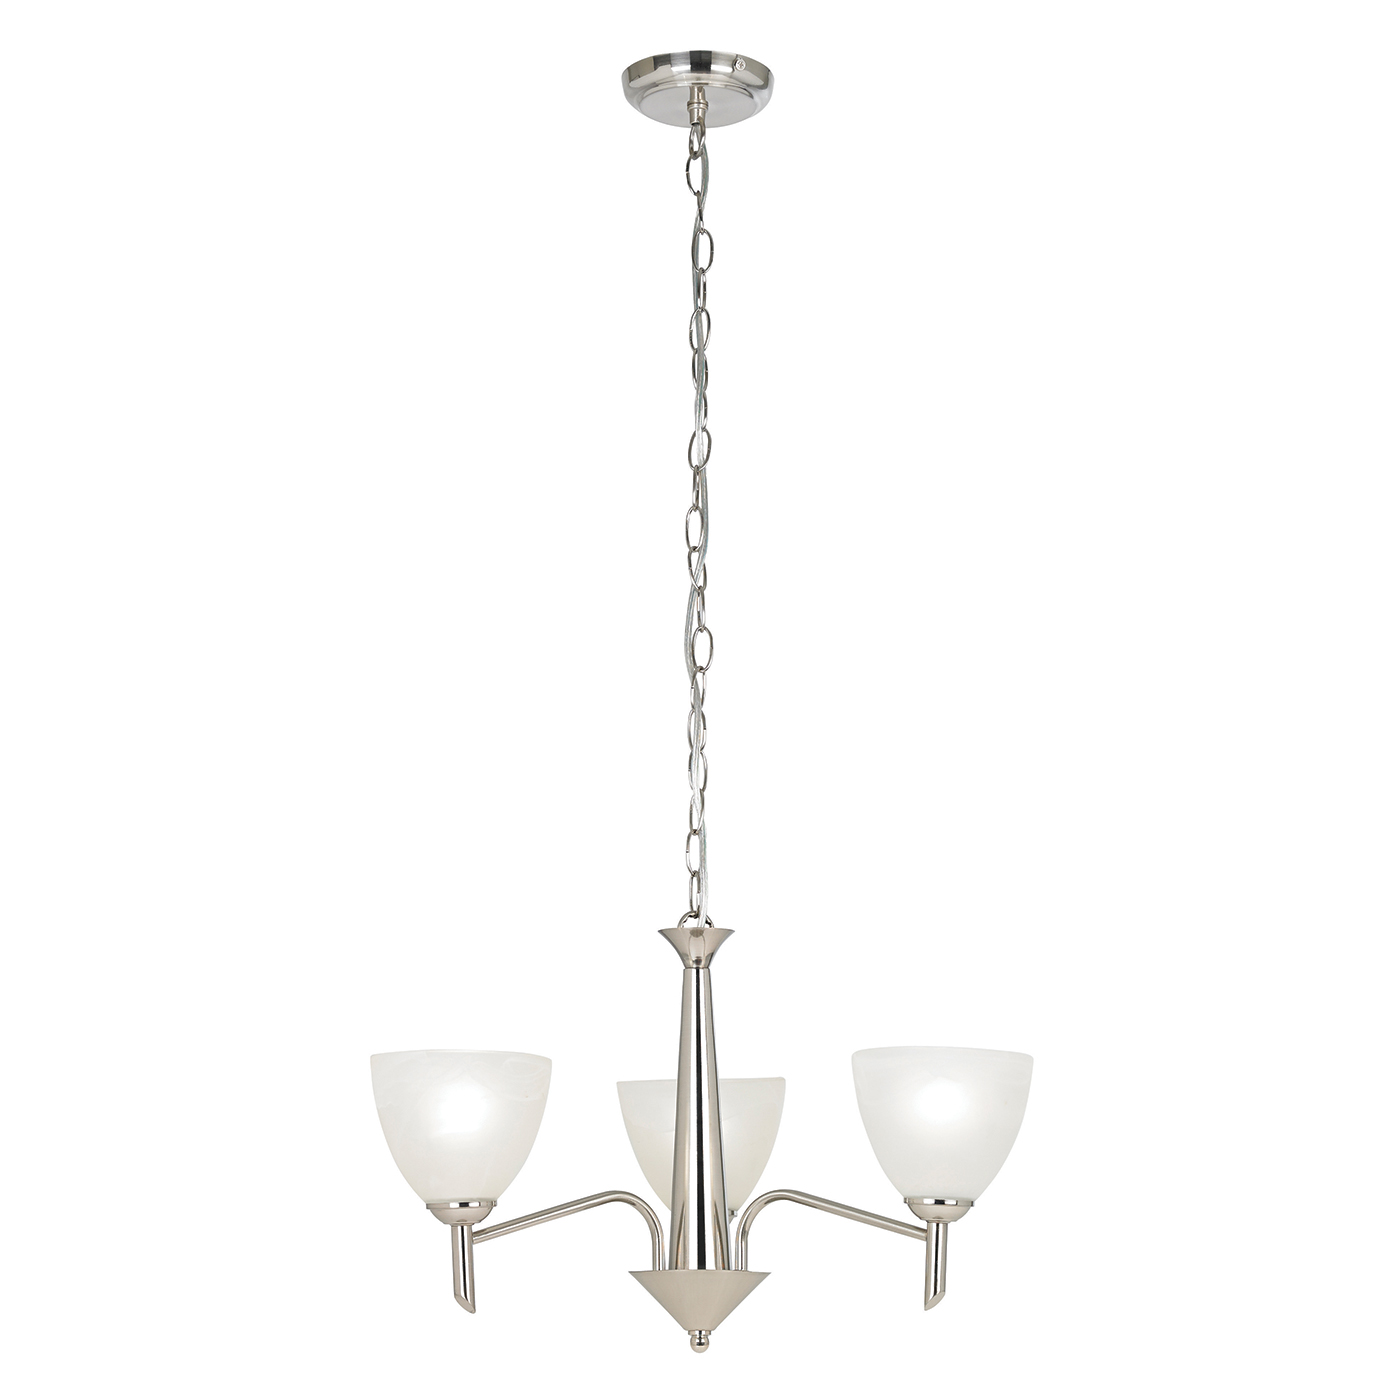 Endon Neeson pendant 3x 40W Satin nickel effect plate & alabaster glass Thumbnail 1